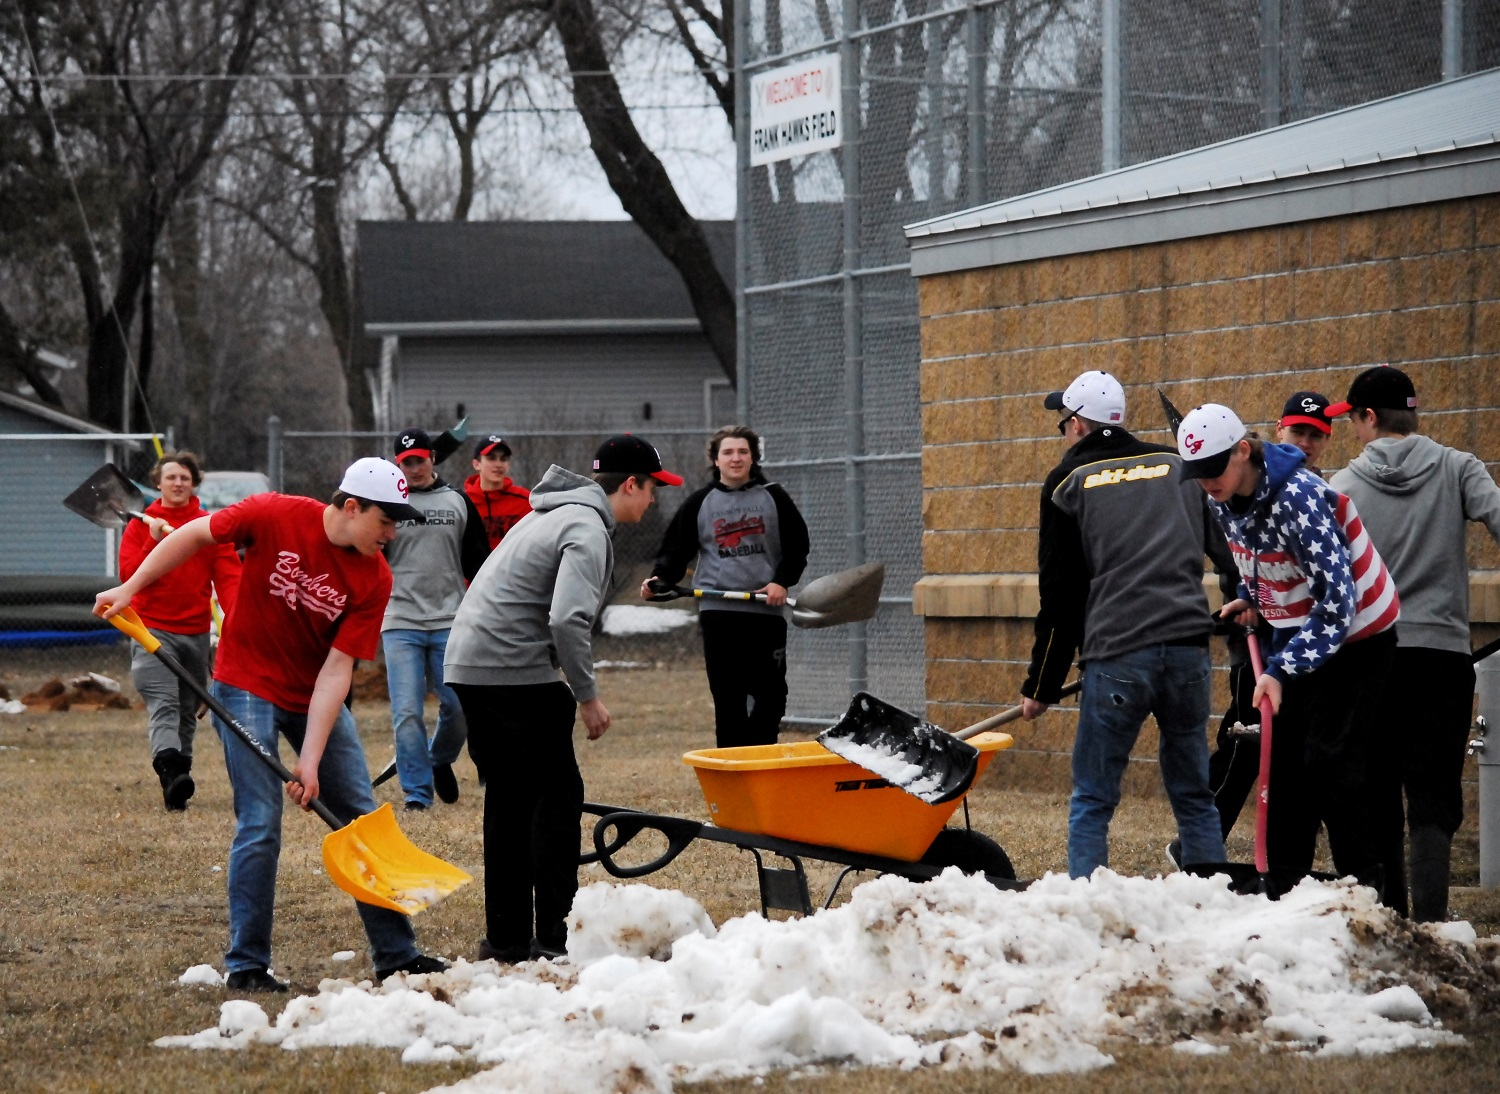 The boys of the baseball team shovel snow off of the field before their upcoming game.